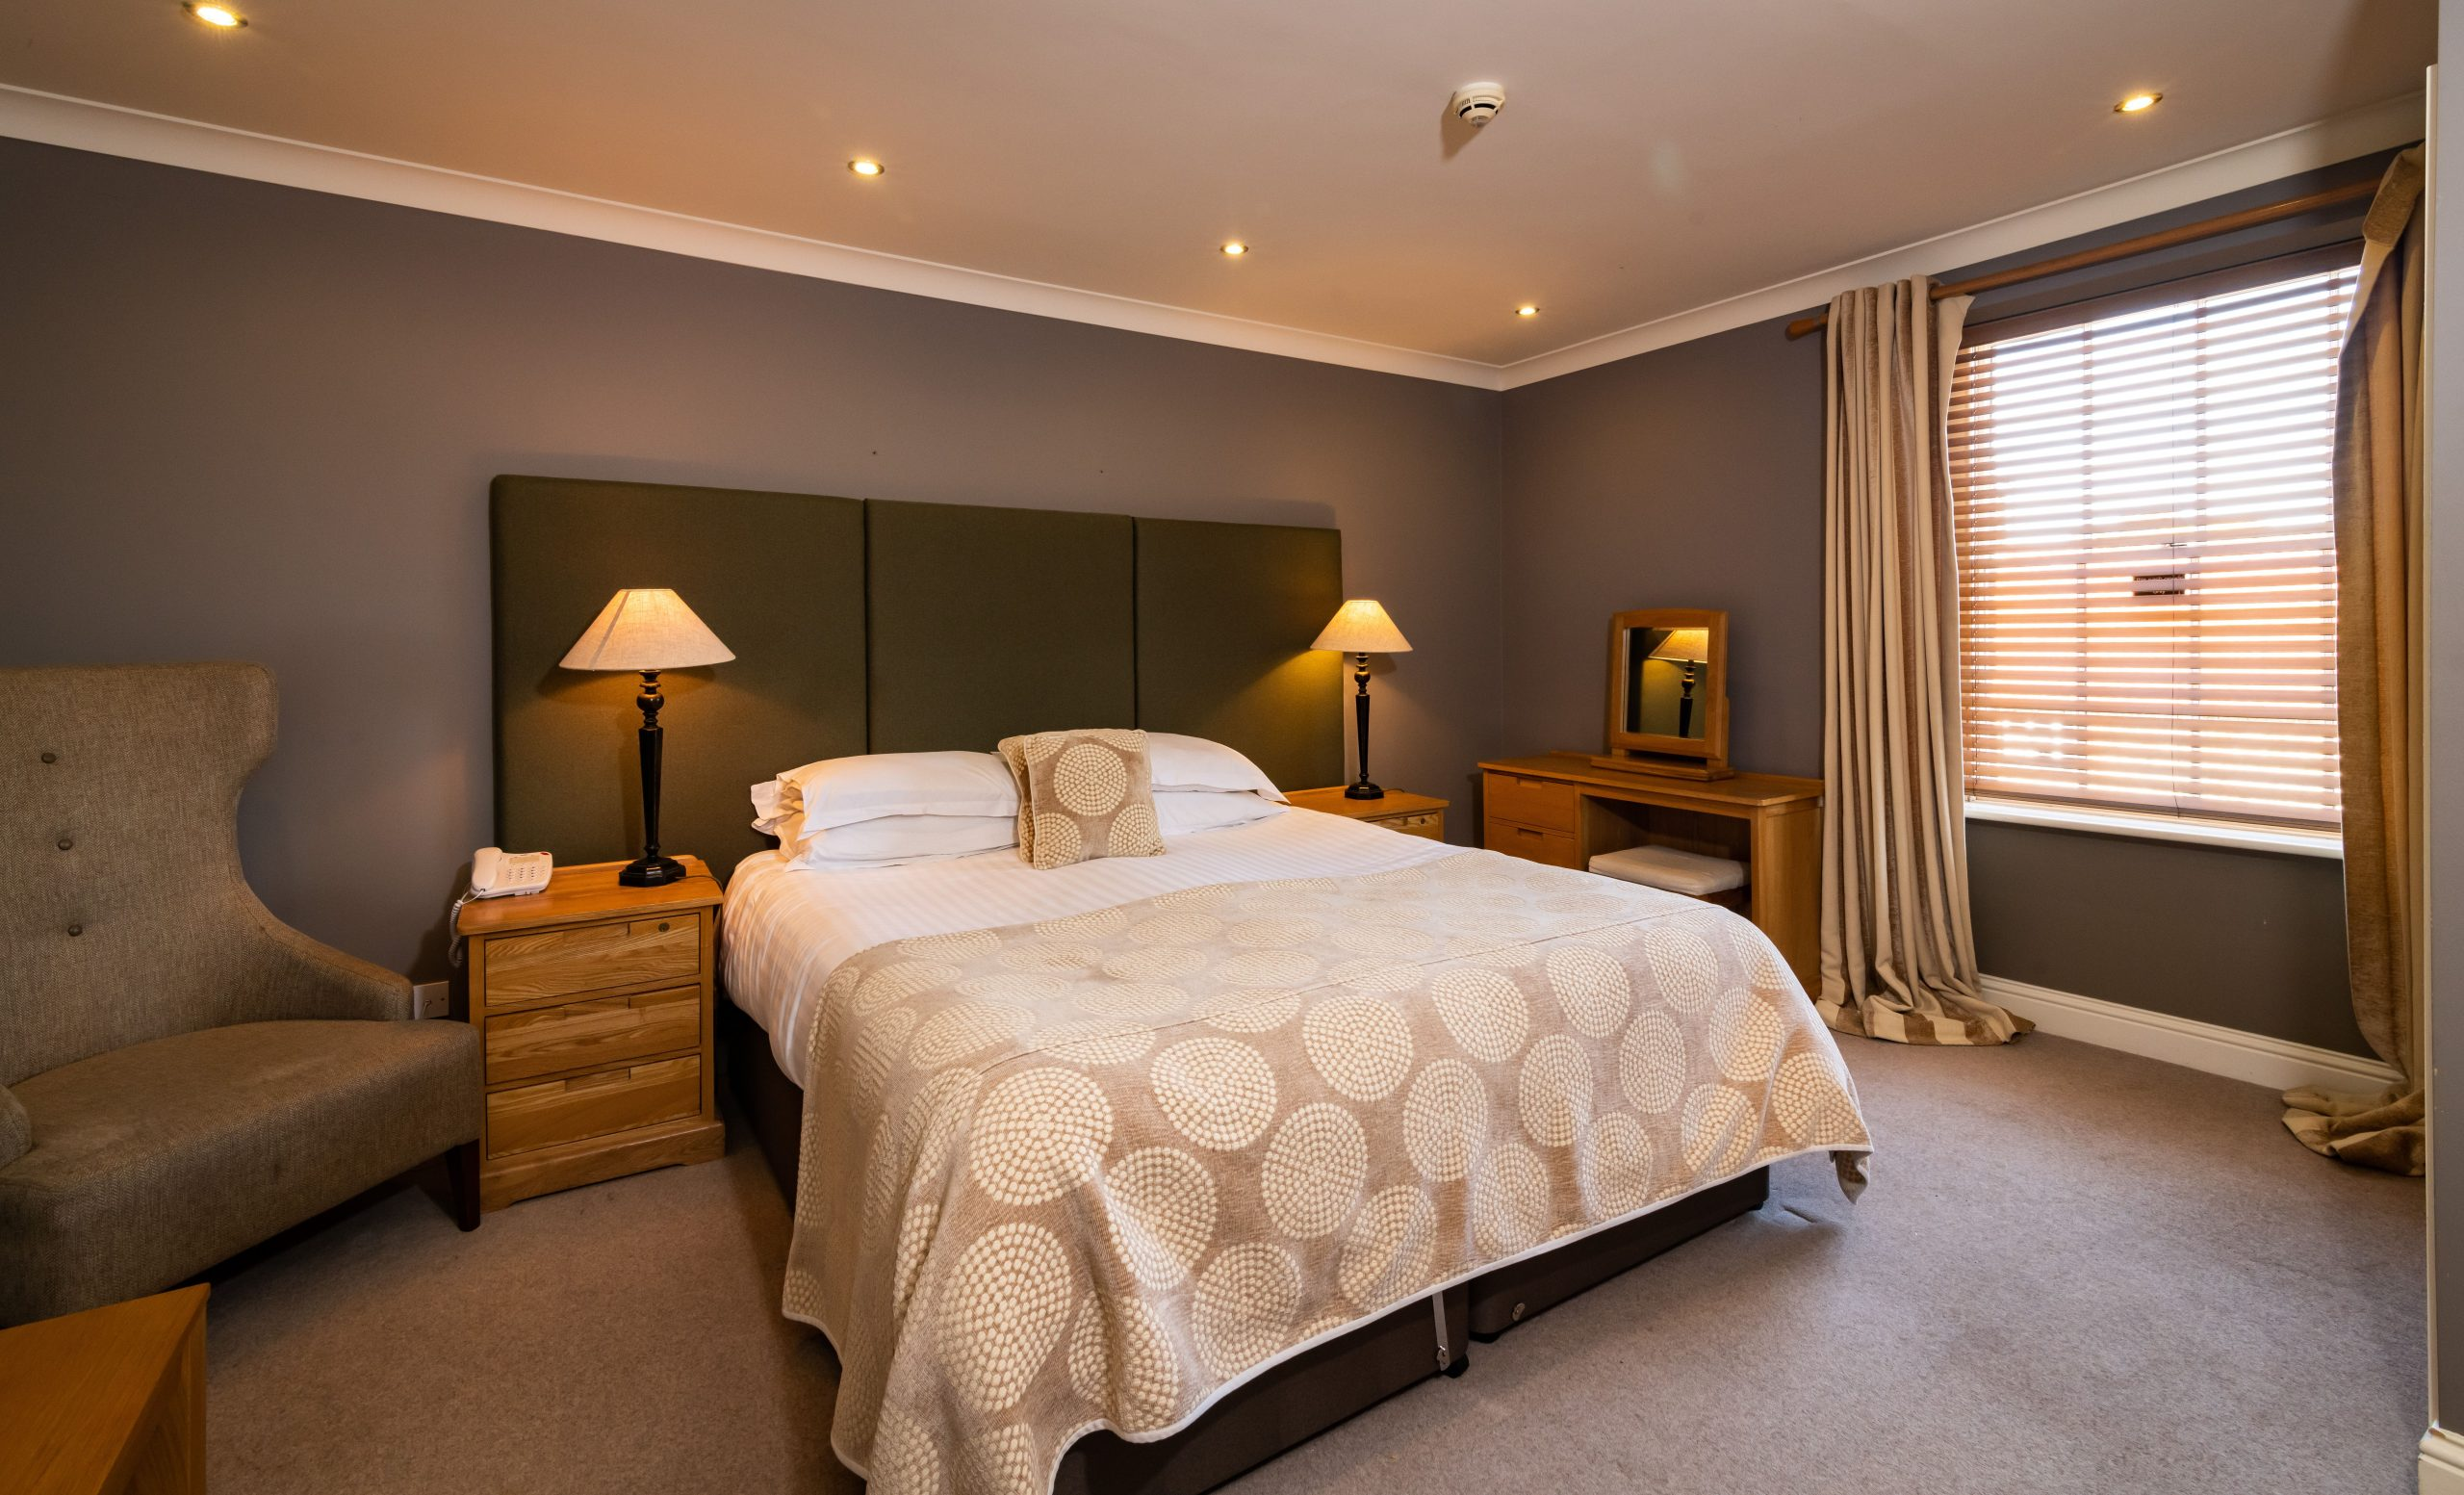 Superior rooms avaiable at The Lodge, Old Hunstanton.